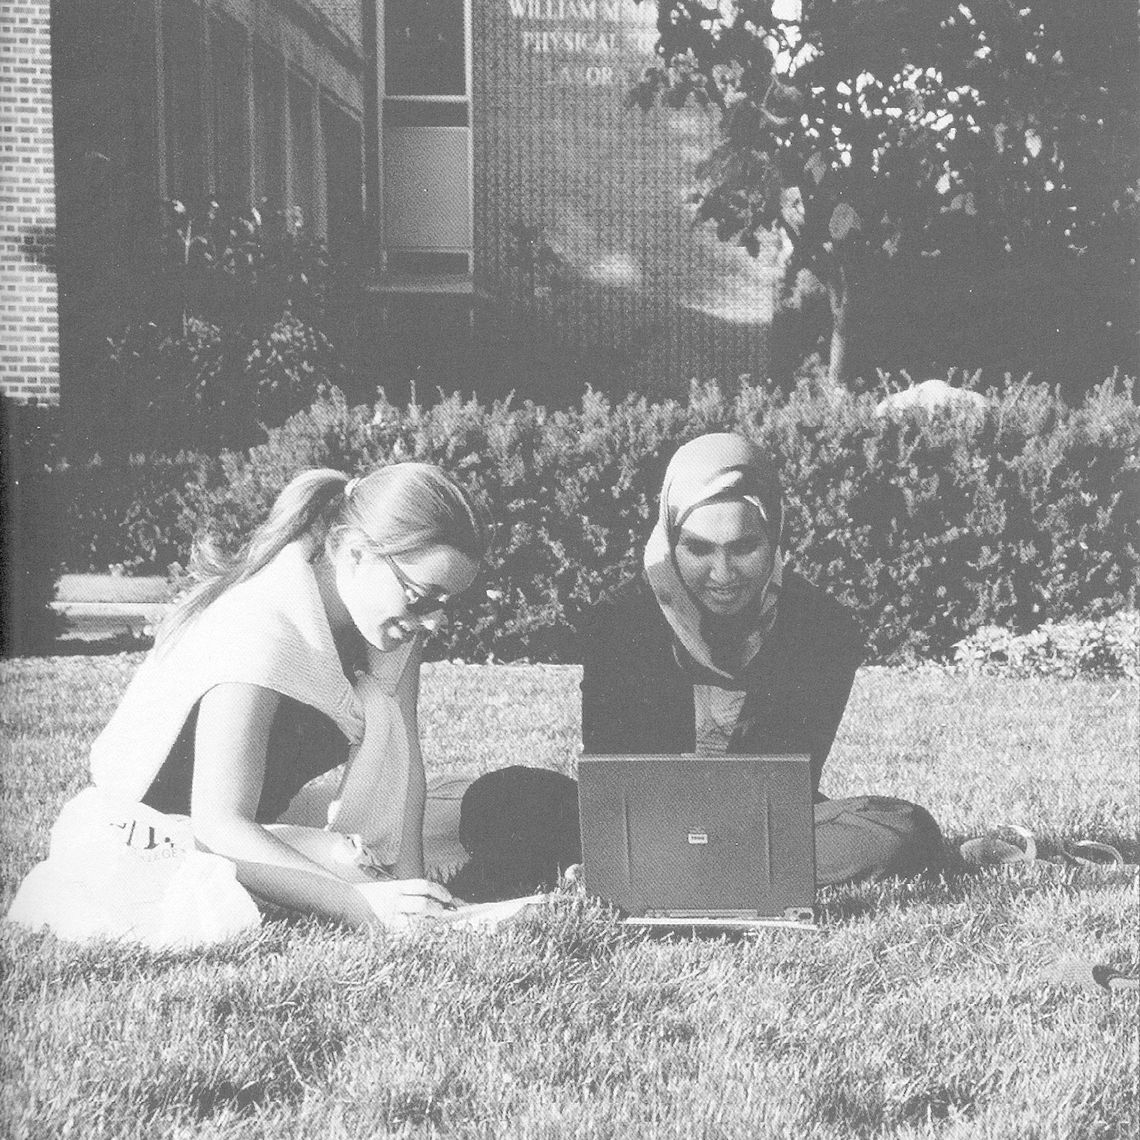 Ismat Dewji (right), class of 2004, taking advantage of wireless technology, works on her laptop on Hartman Green. Serli Guleryuz, class of 2005 is at the left. 2001 photograph.